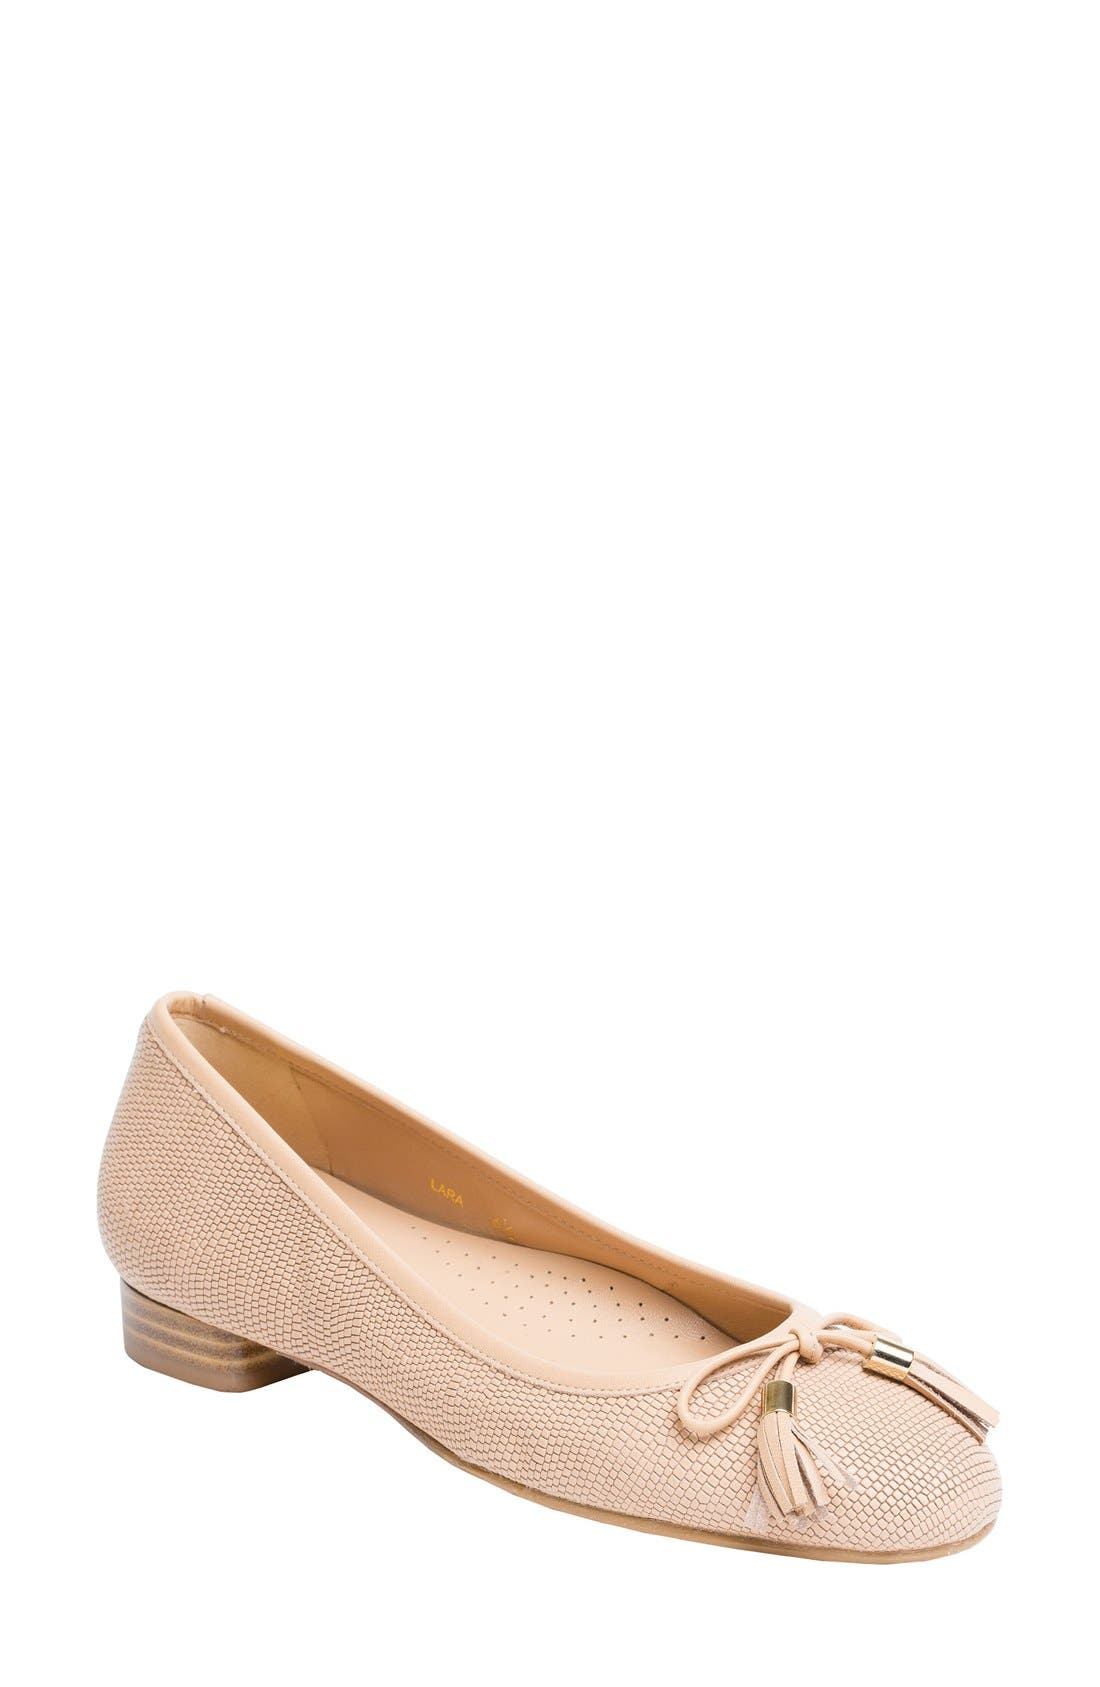 Alternate Image 1 Selected - UKIES Lara Ballet Flat (Women)